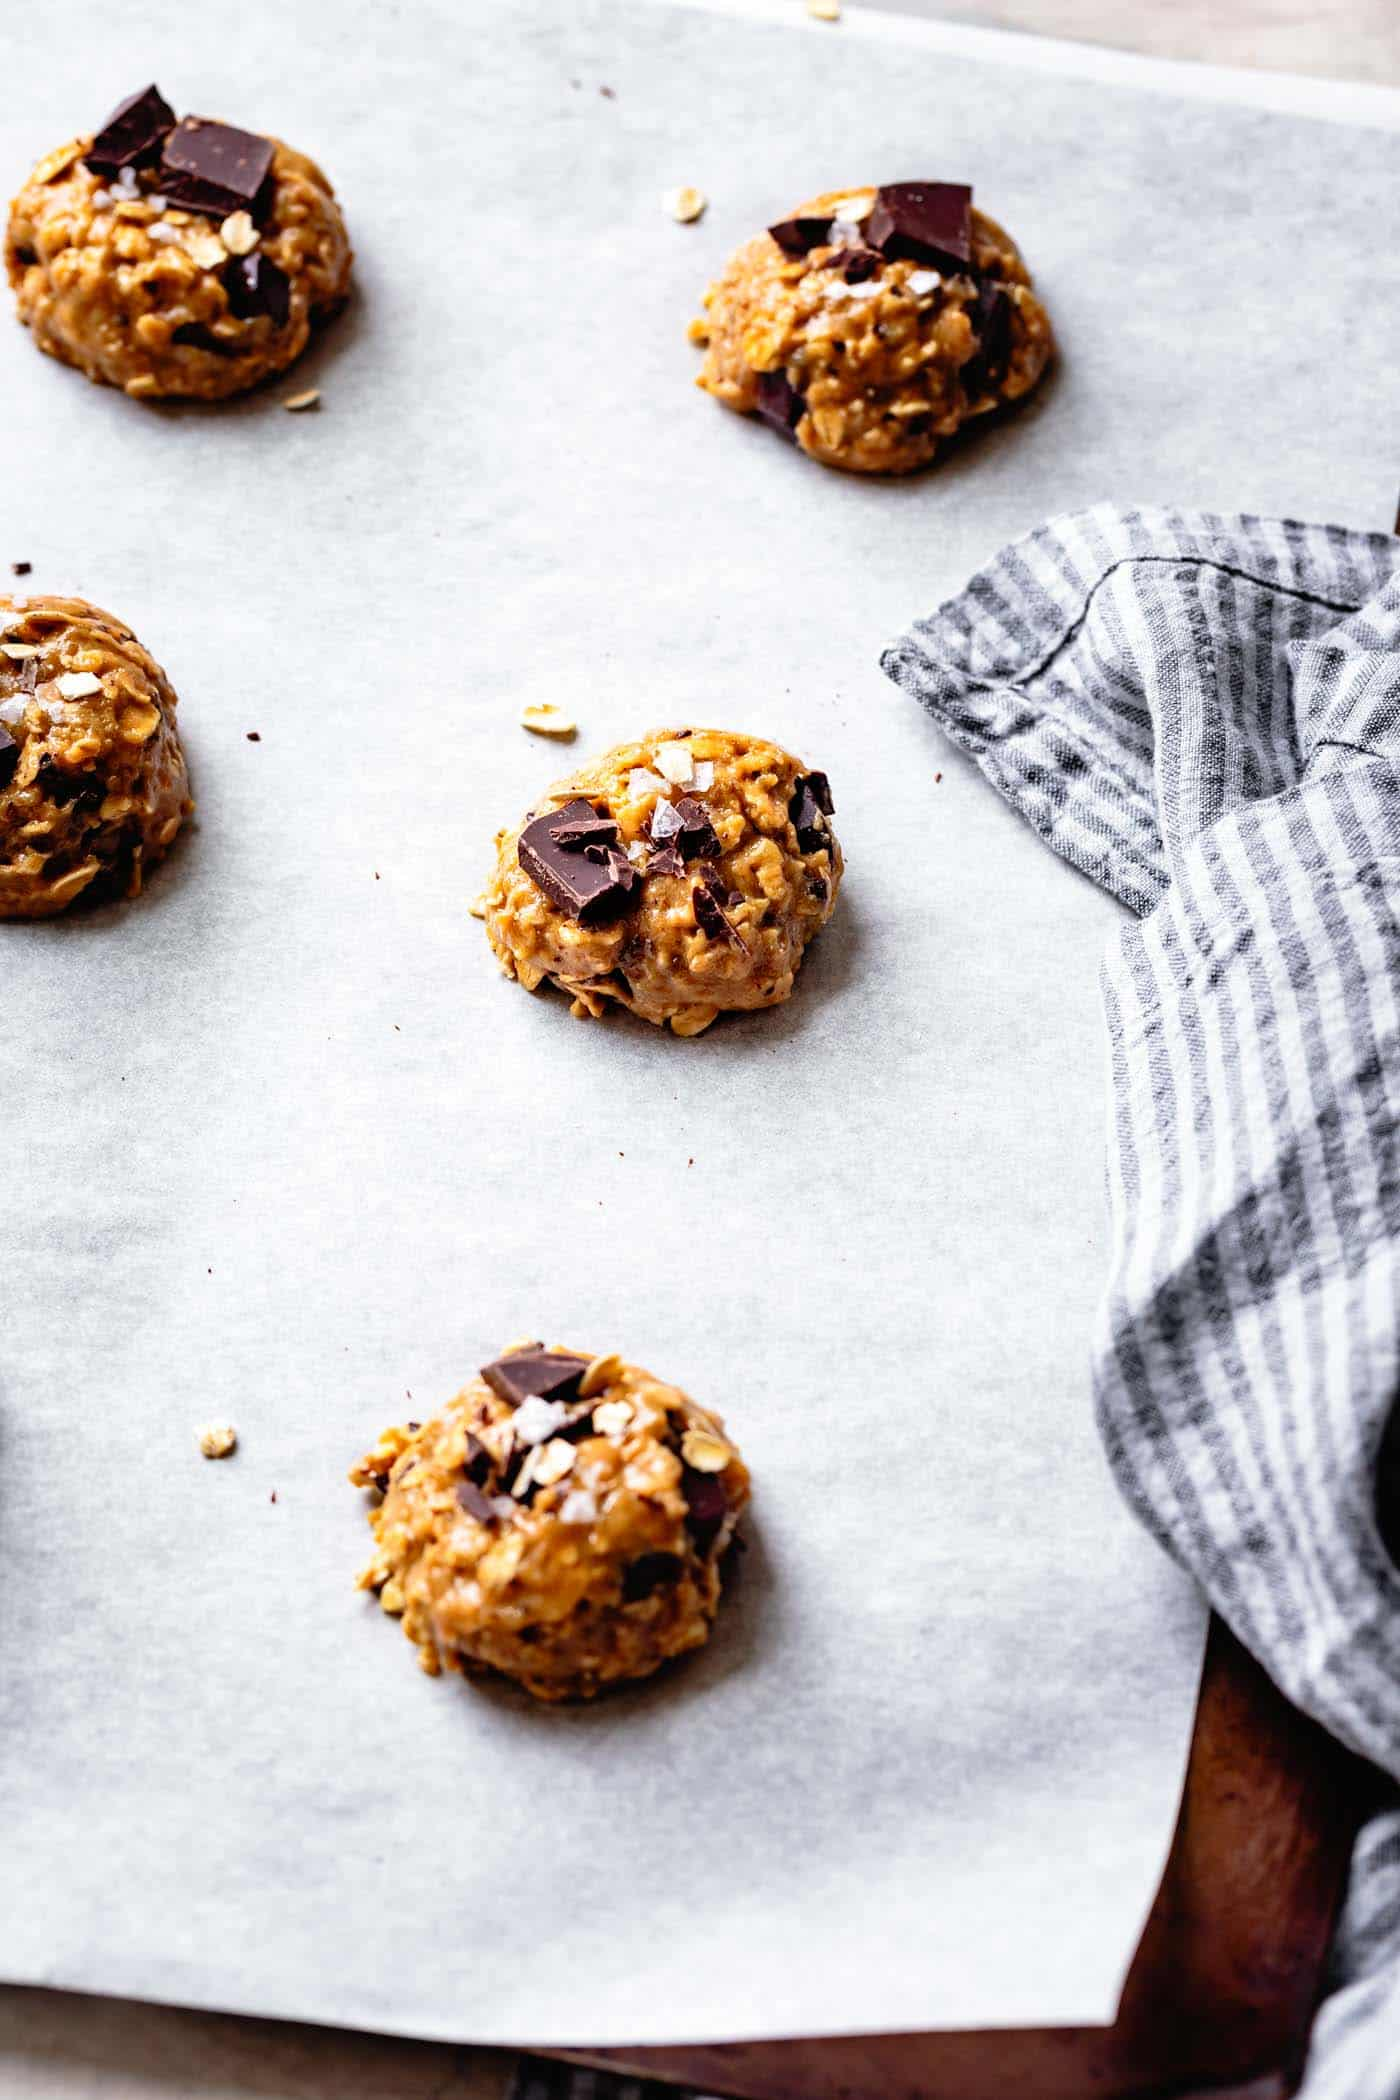 Soft scooped vegan tahini chocolate chip cookies for baking now